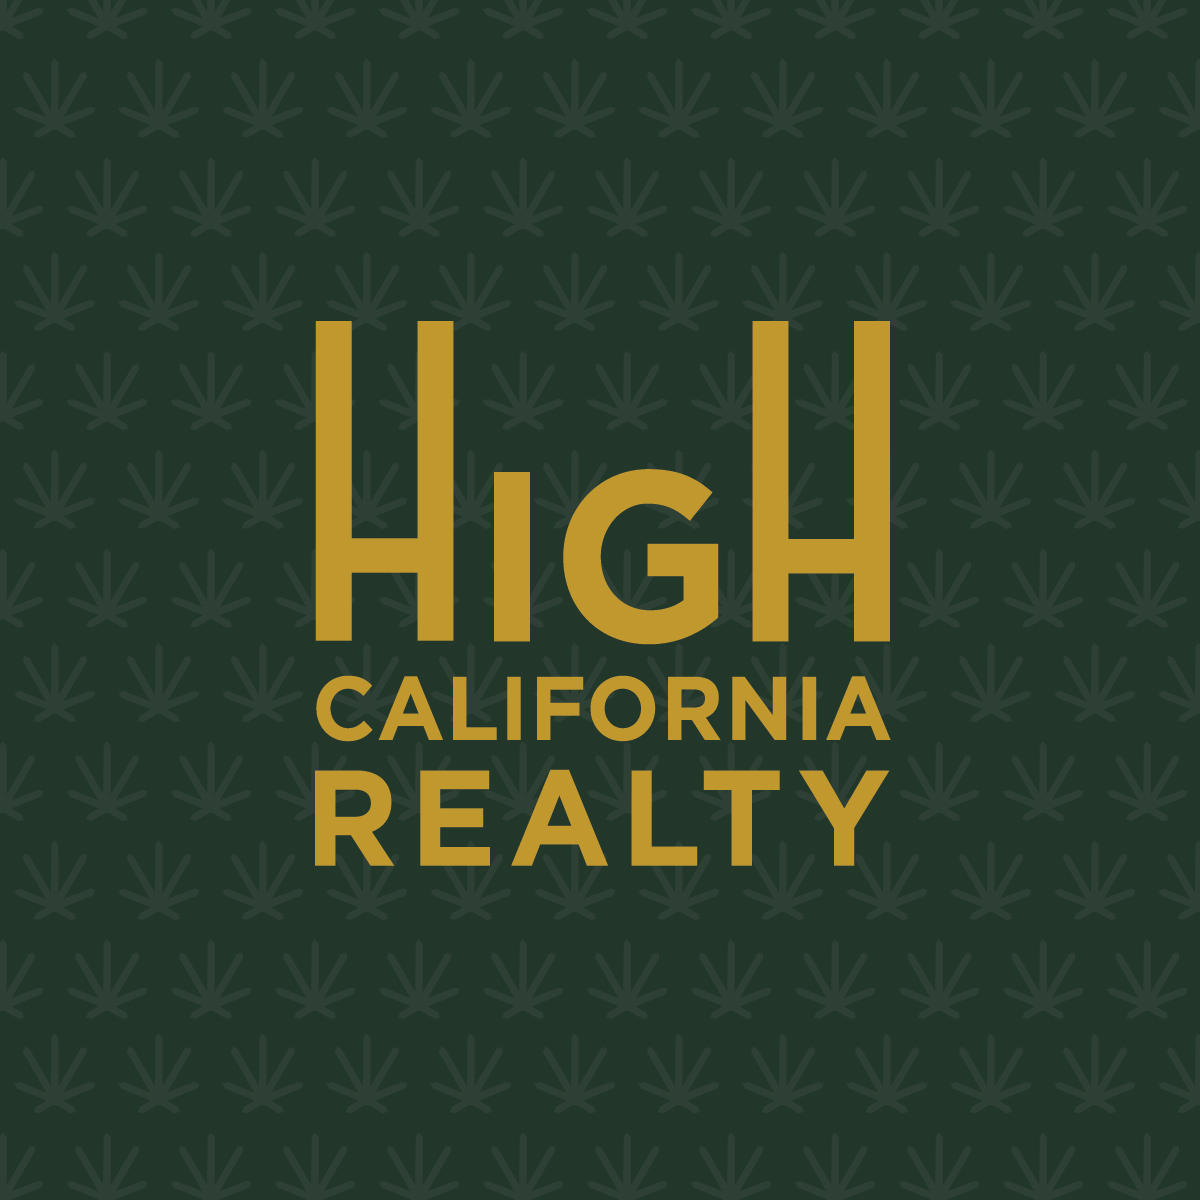 Logo for High California Realty, Inc.